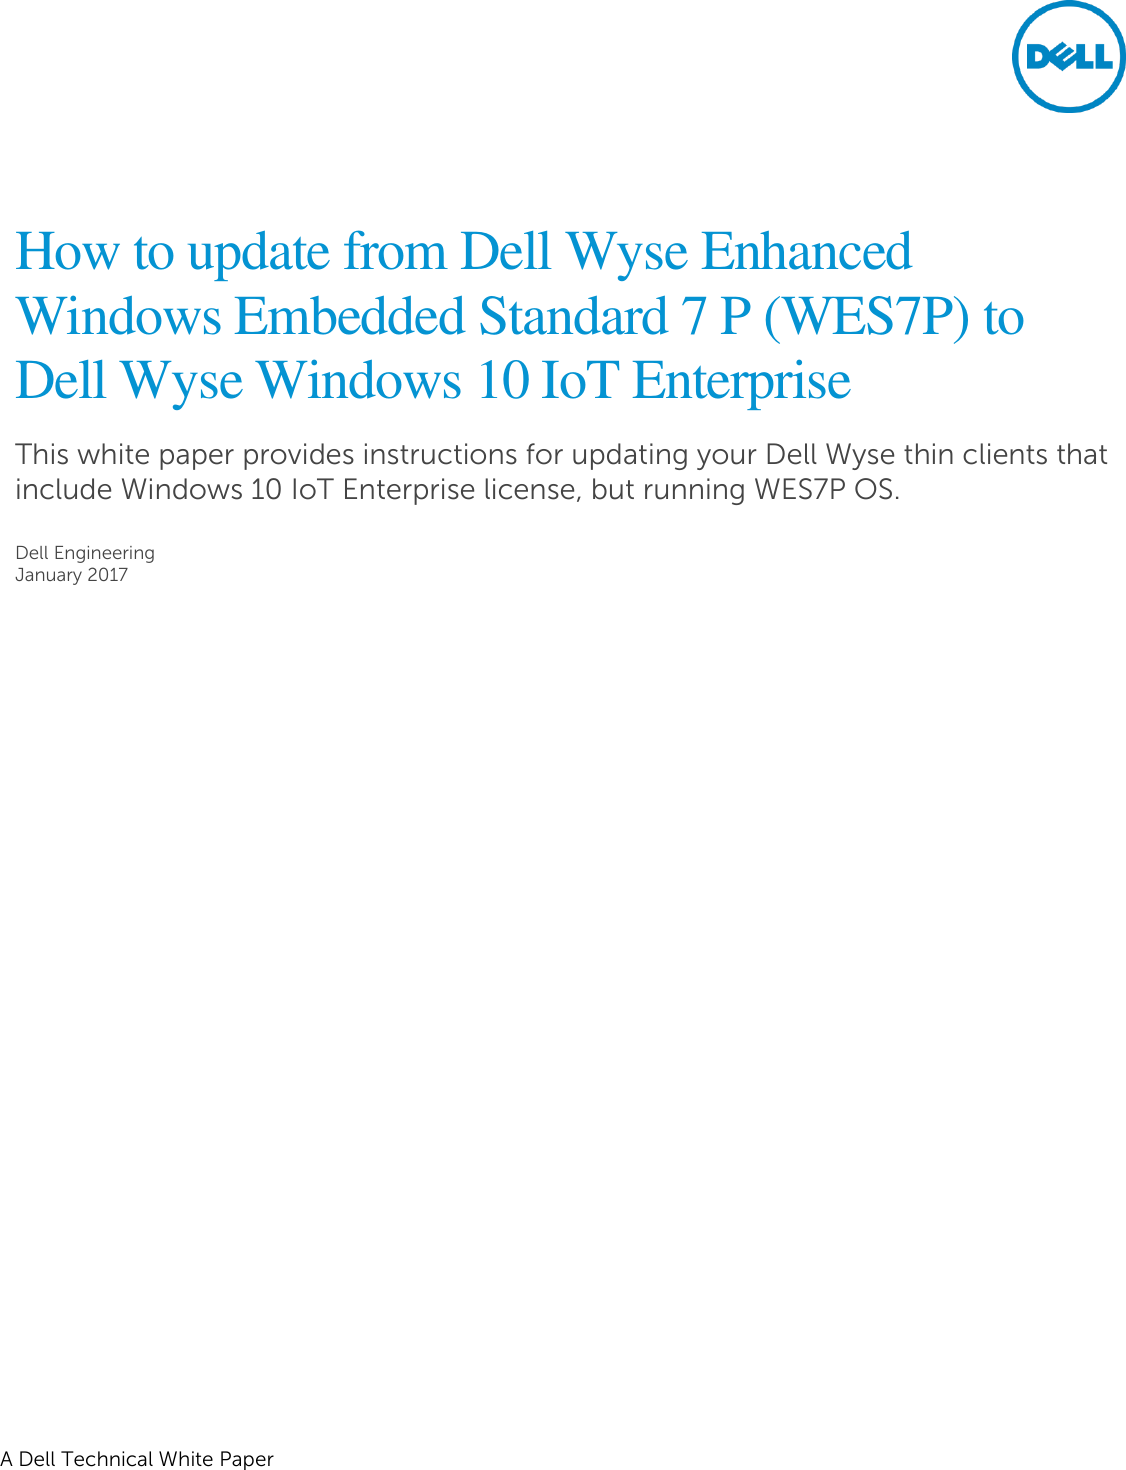 Dell Wyse 7040 thin client How To Update From Enhanced